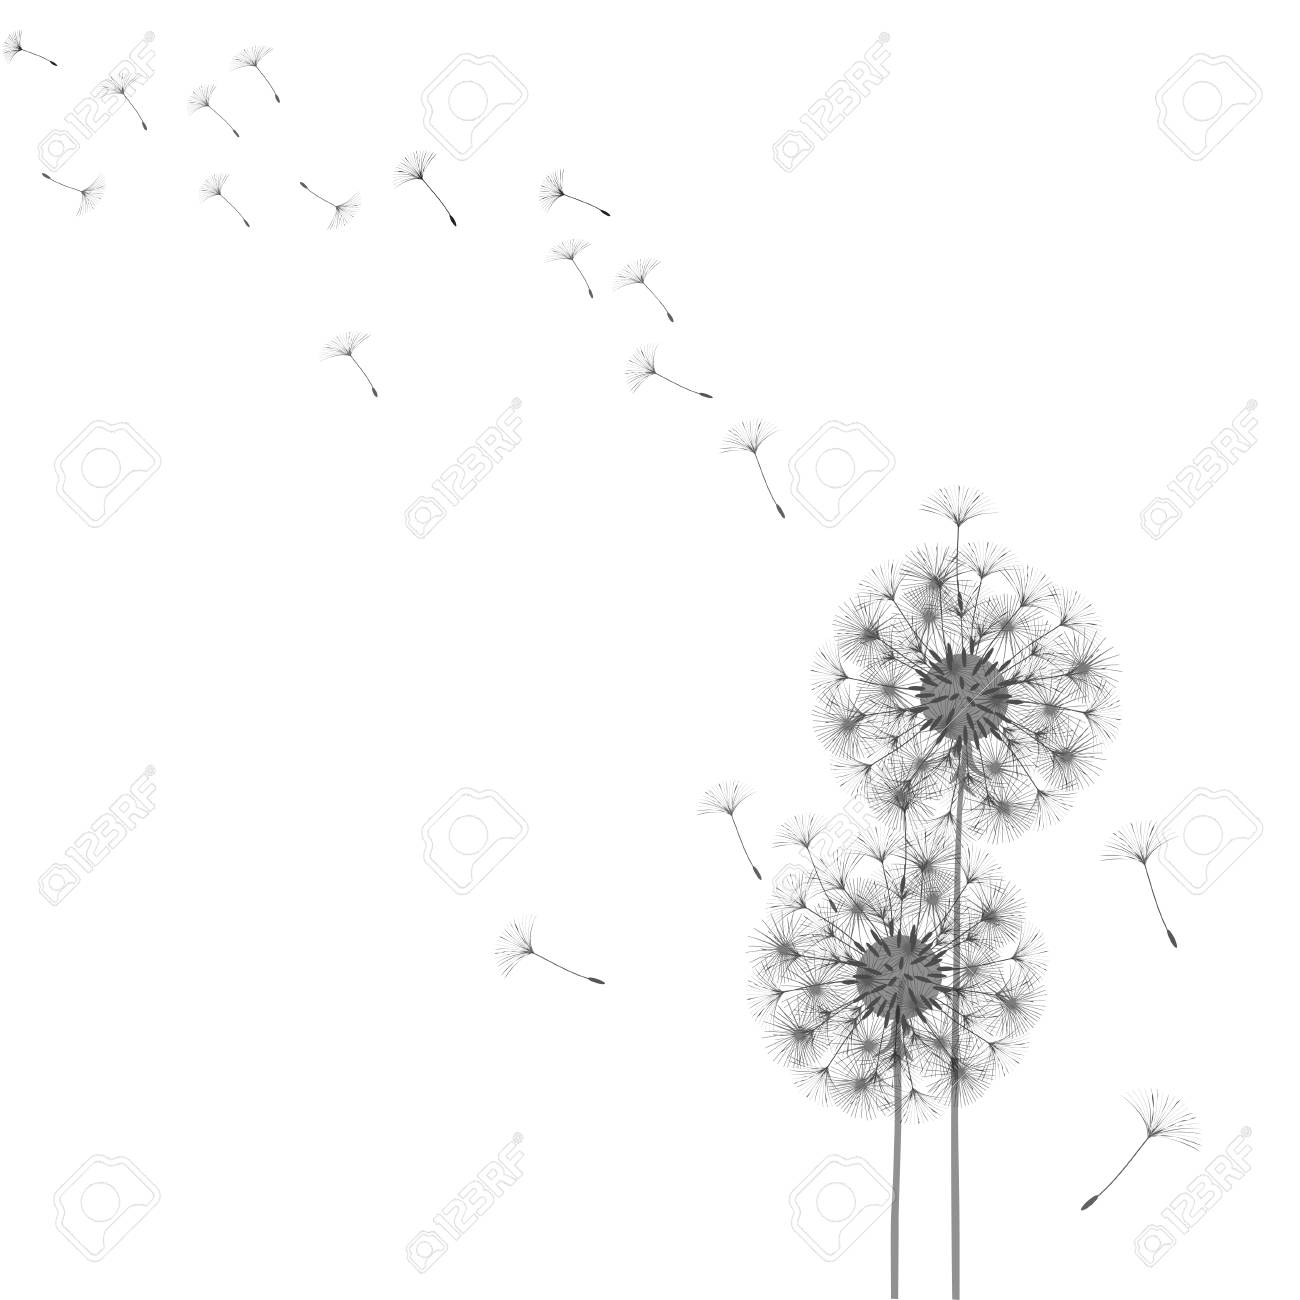 abstract dandelion template design royalty free cliparts vectors